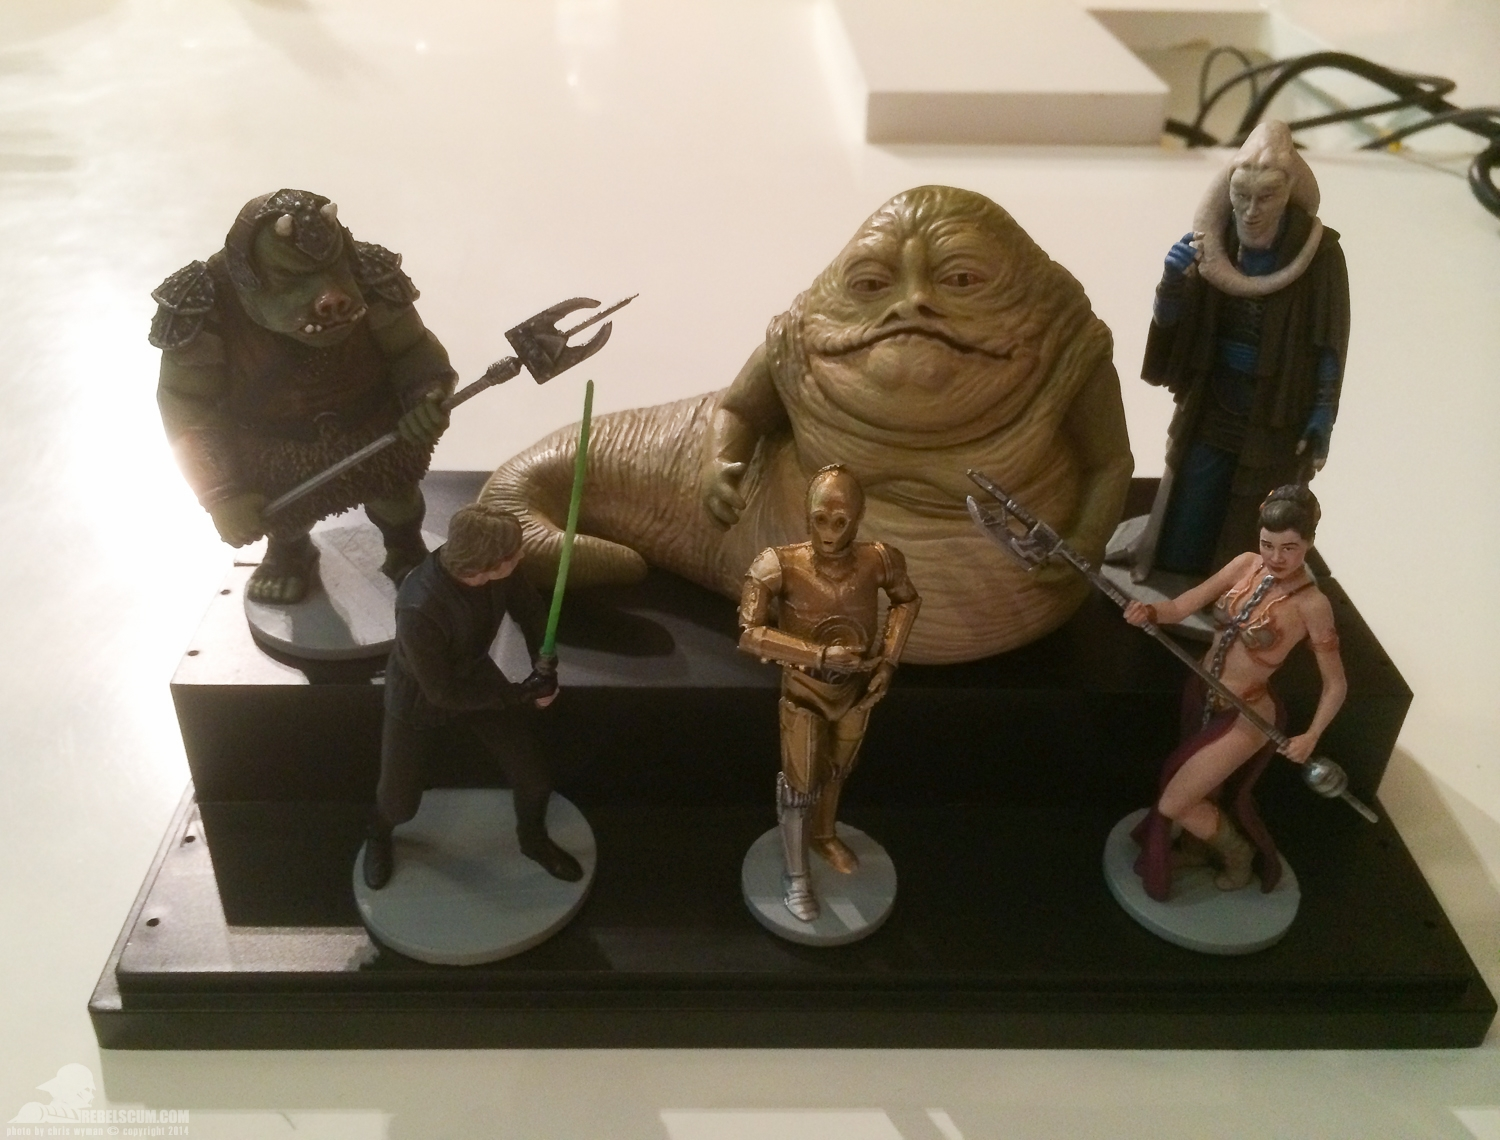 upcoming return of the jedi figurines from disney with jabba s palace characters mighty. Black Bedroom Furniture Sets. Home Design Ideas